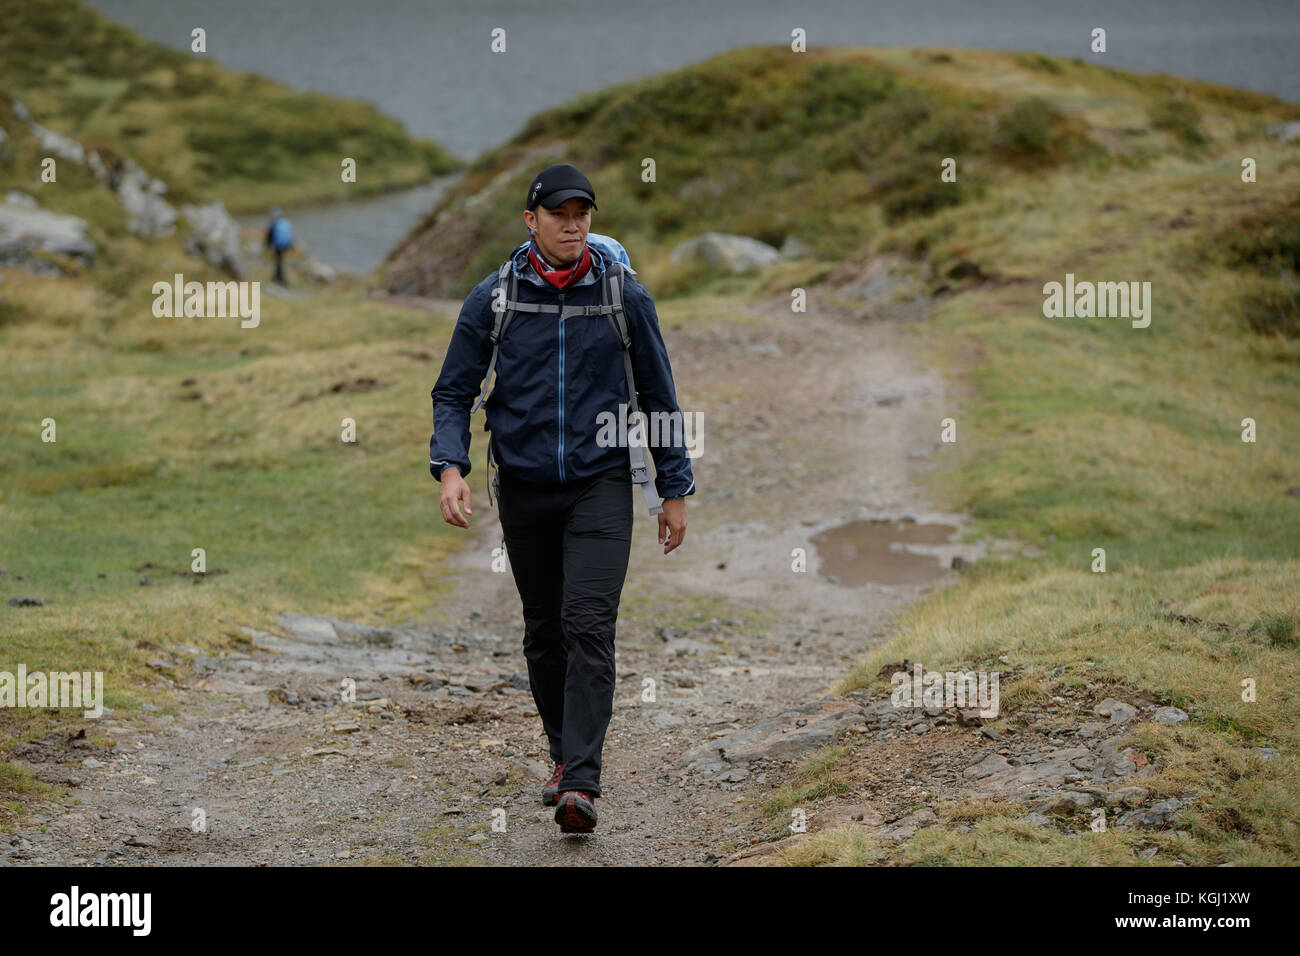 An Asian man hiking in the Austrian Mountains - Stock Image